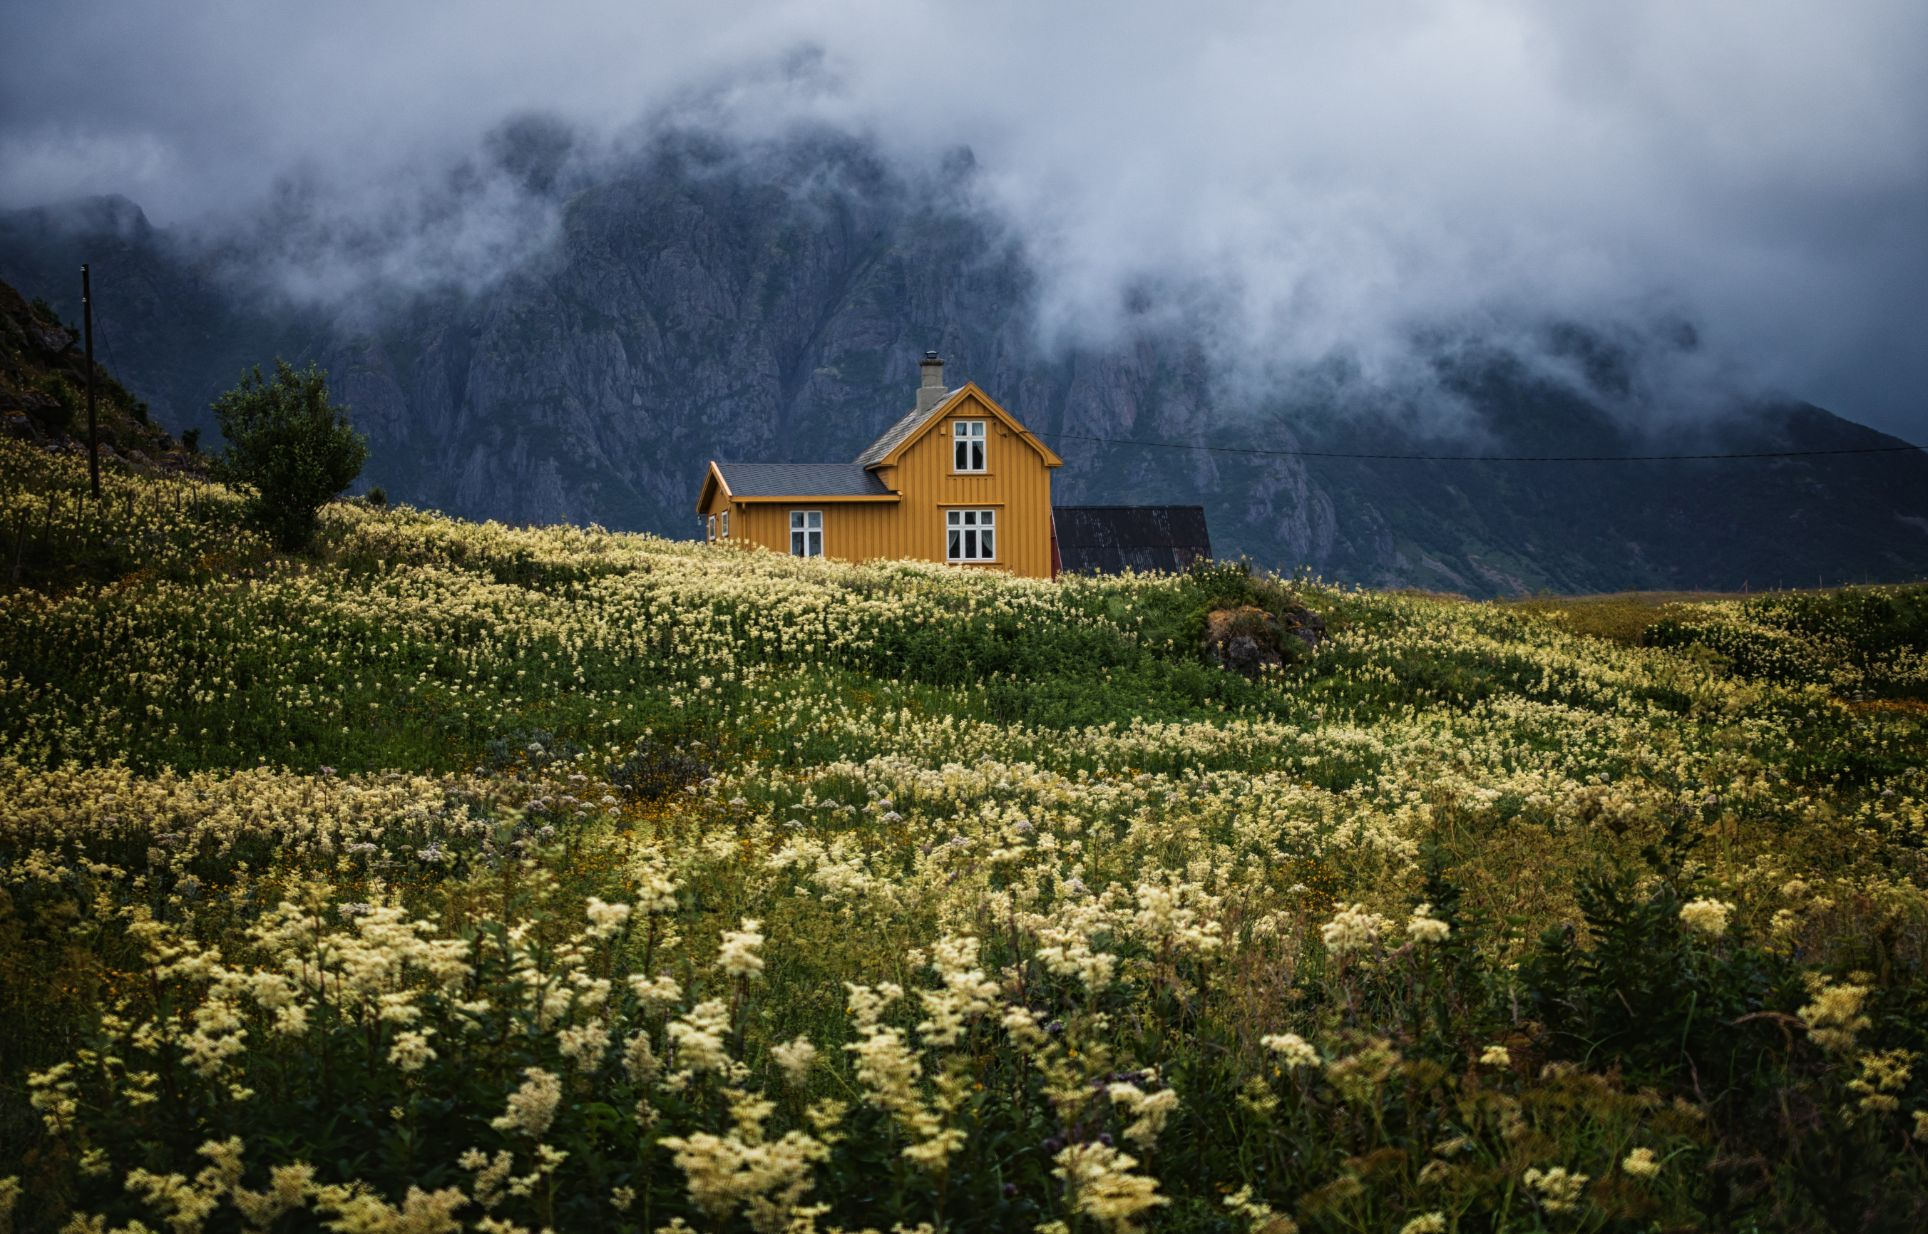 small yellow house in a field with mountains